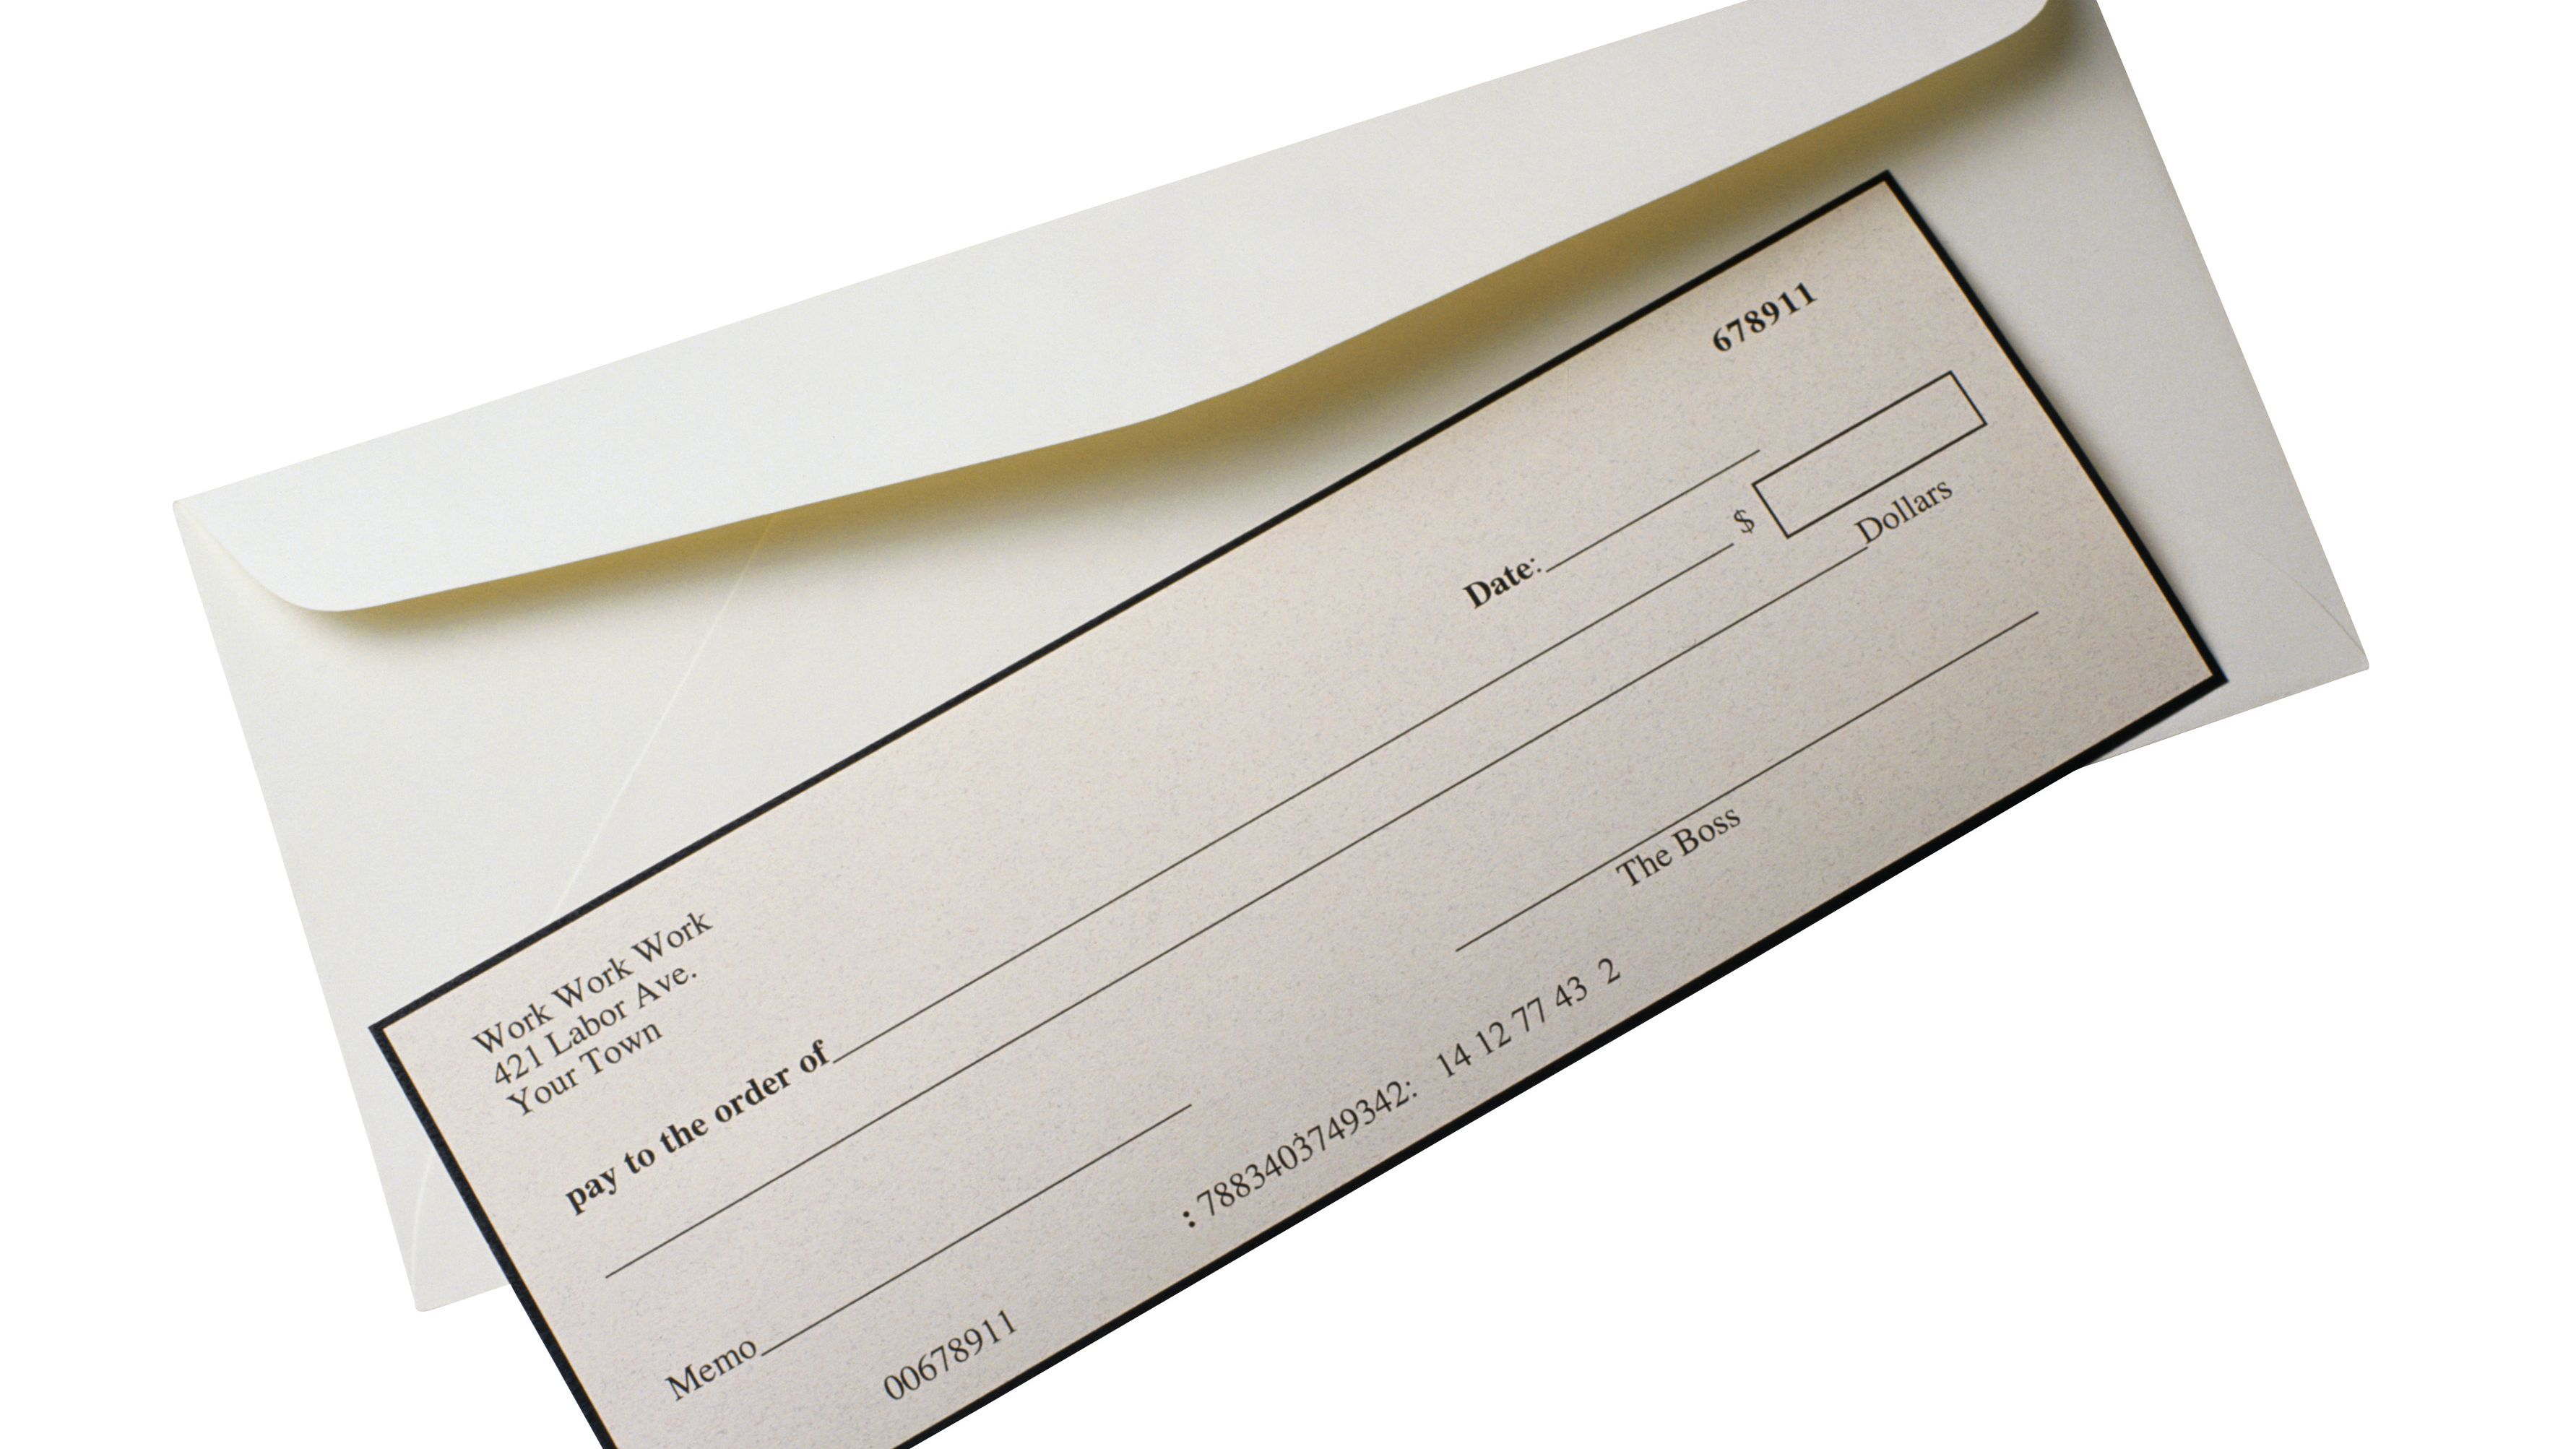 How to Deal with Unclaimed Paychecks in Your Business